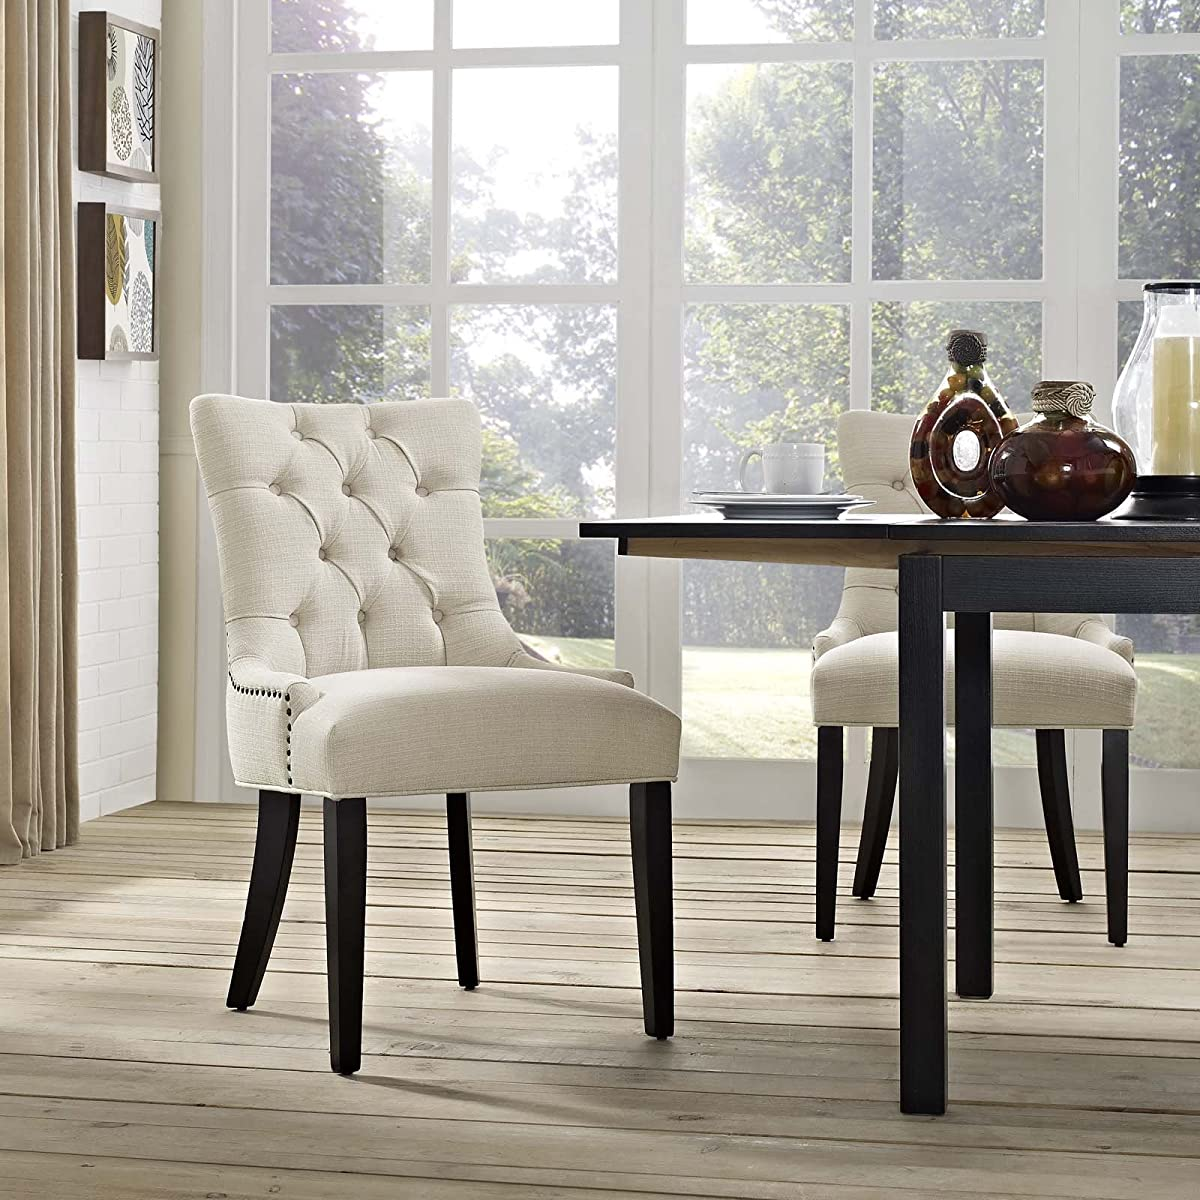 Modway Regent Modern Elegant Button-Tufted Upholstered Fabric Dining Side Chair with Nailhead Trim in Beige